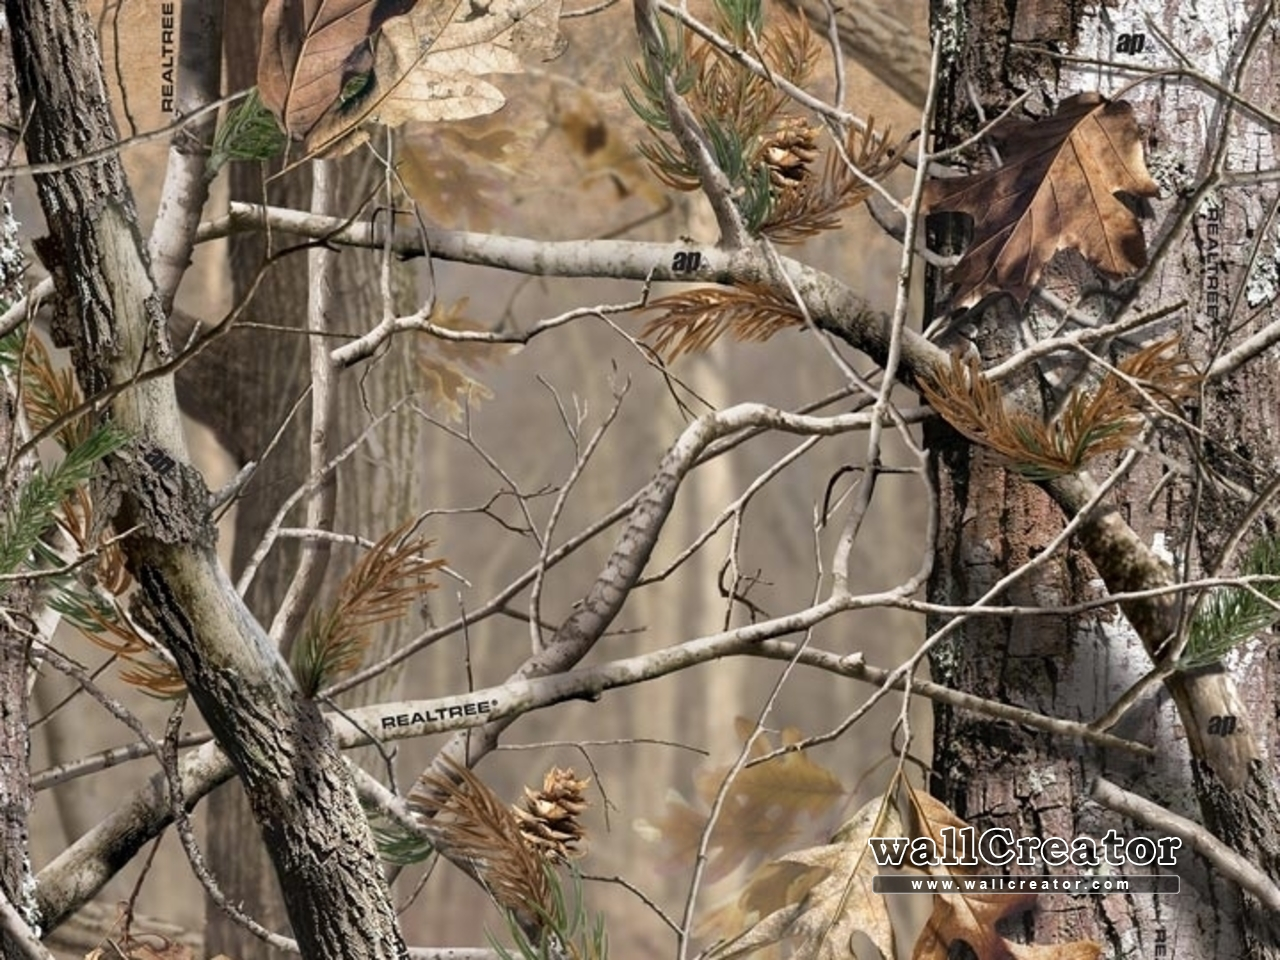 Realtree Camo Wallpaper For Walls